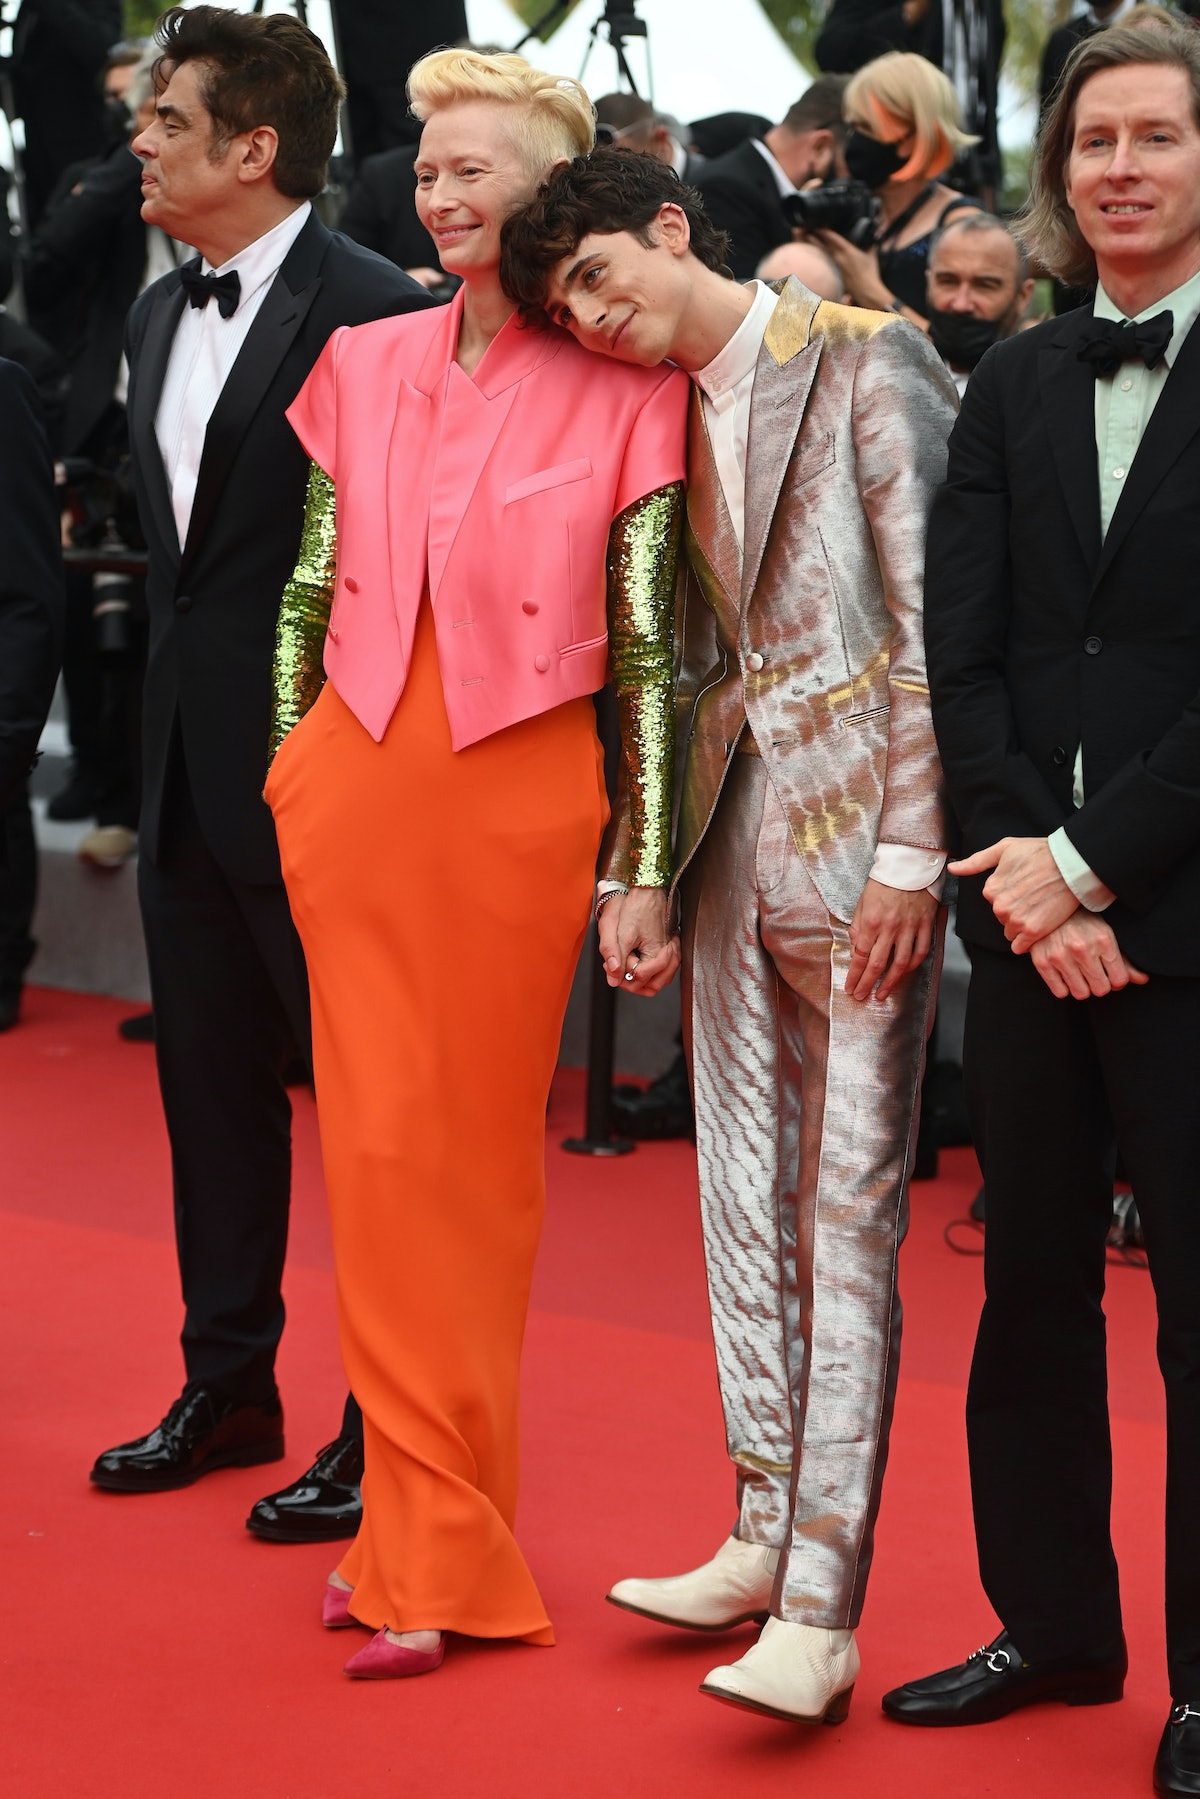 Timothée Chalamet Returns to the Red Carpet in a Very Shiny Suit